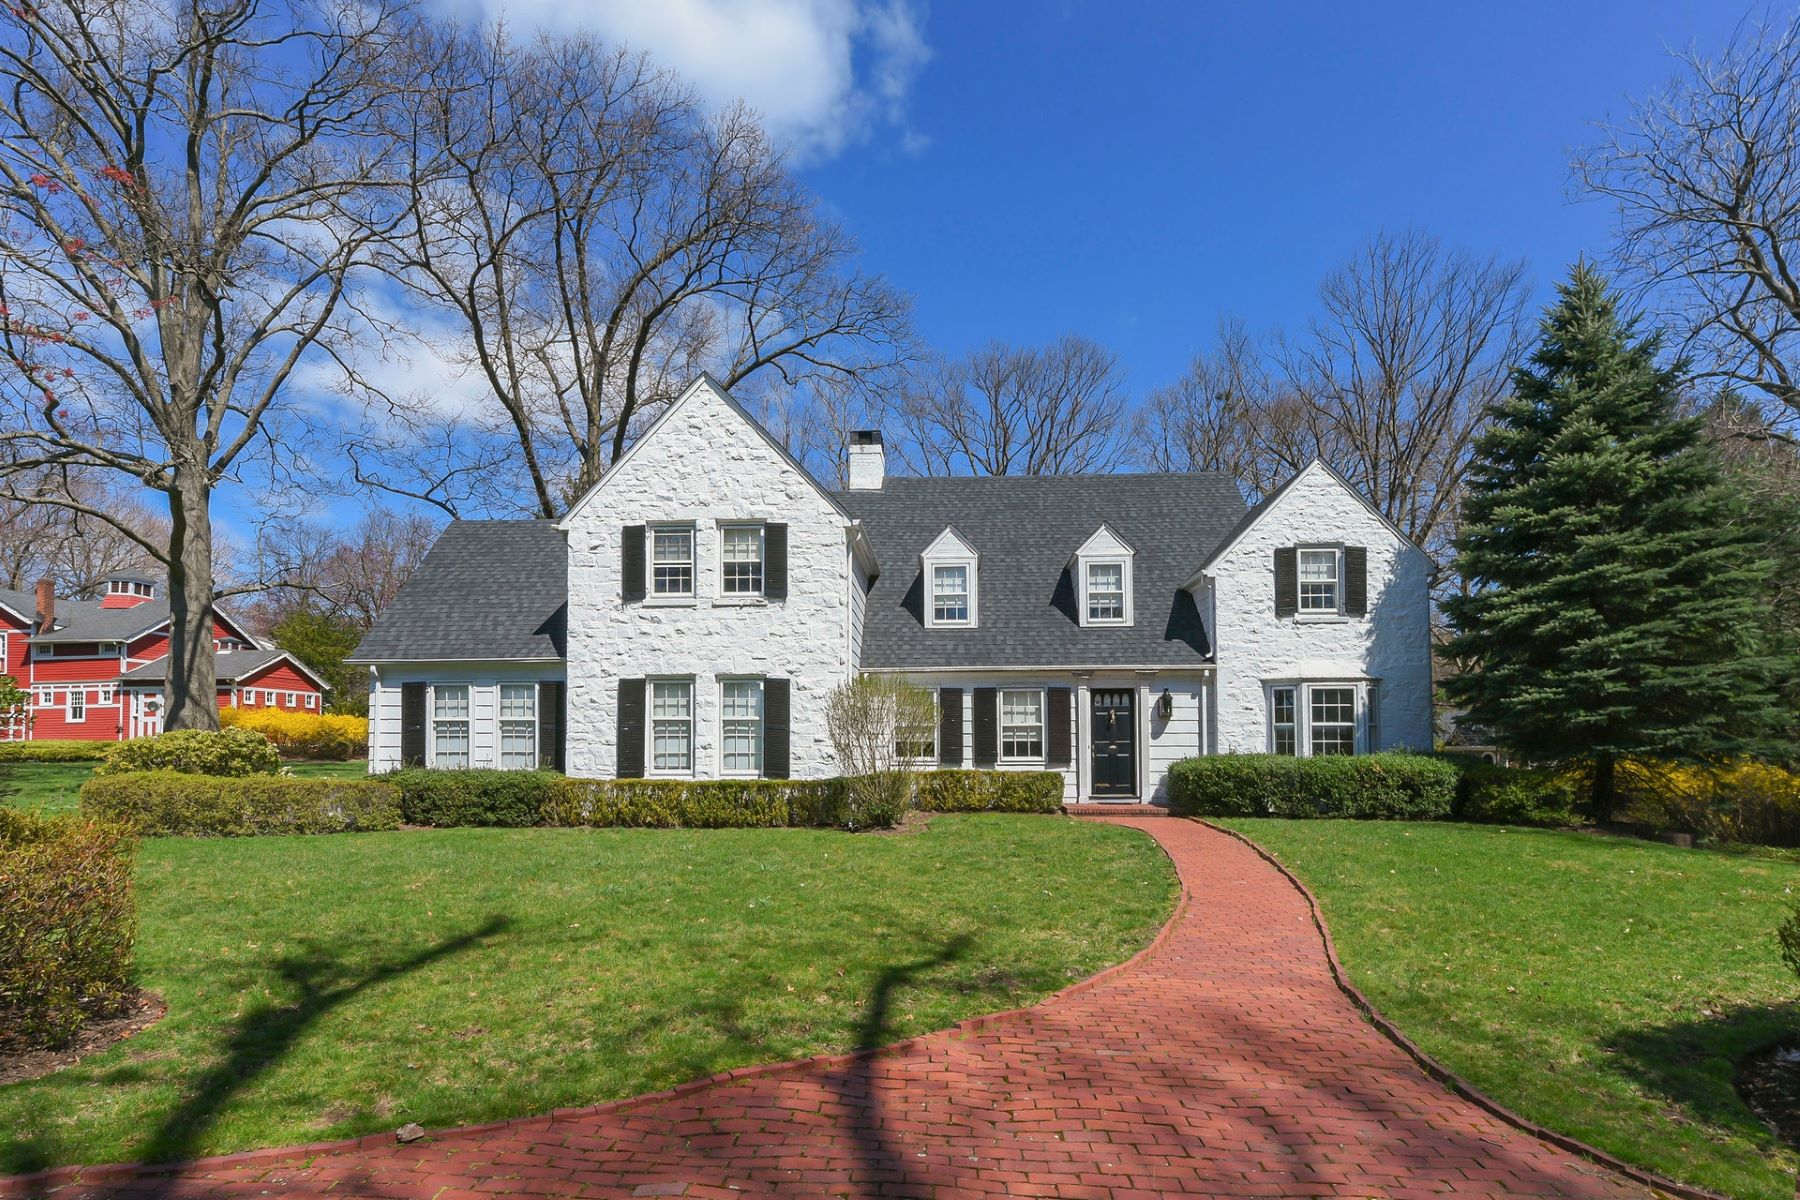 Land for Sale at Bucolic Retreat 44 Lydecker St, Englewood, New Jersey 07631 United States